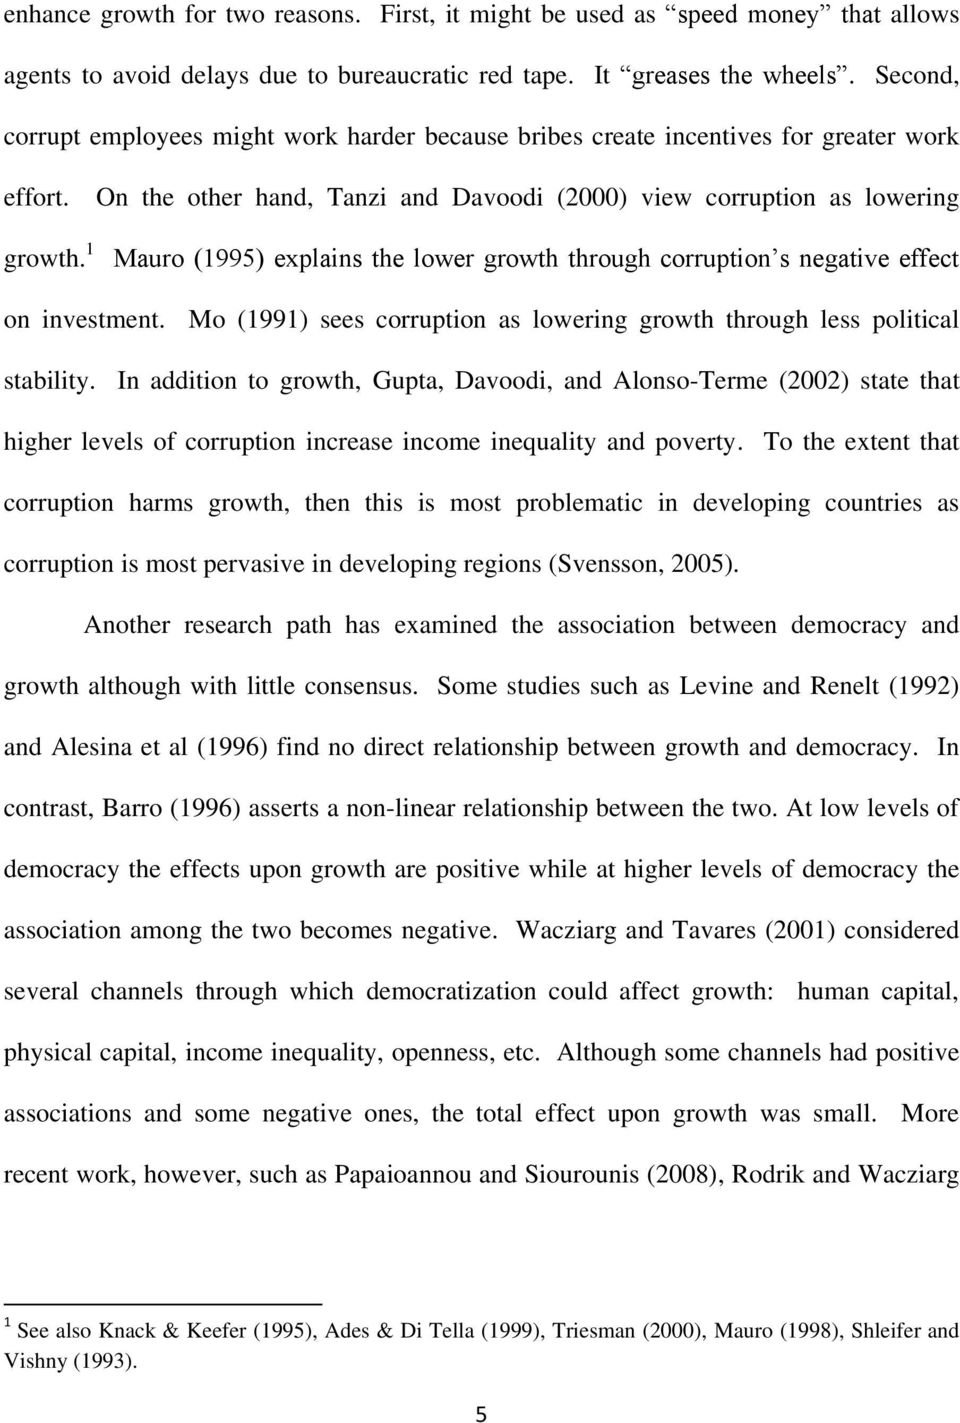 1 On the other hand, Tanzi and Davoodi (2000) view corruption as lowering Mauro (1995) explains the lower growth through corruption s negative effect on investment.